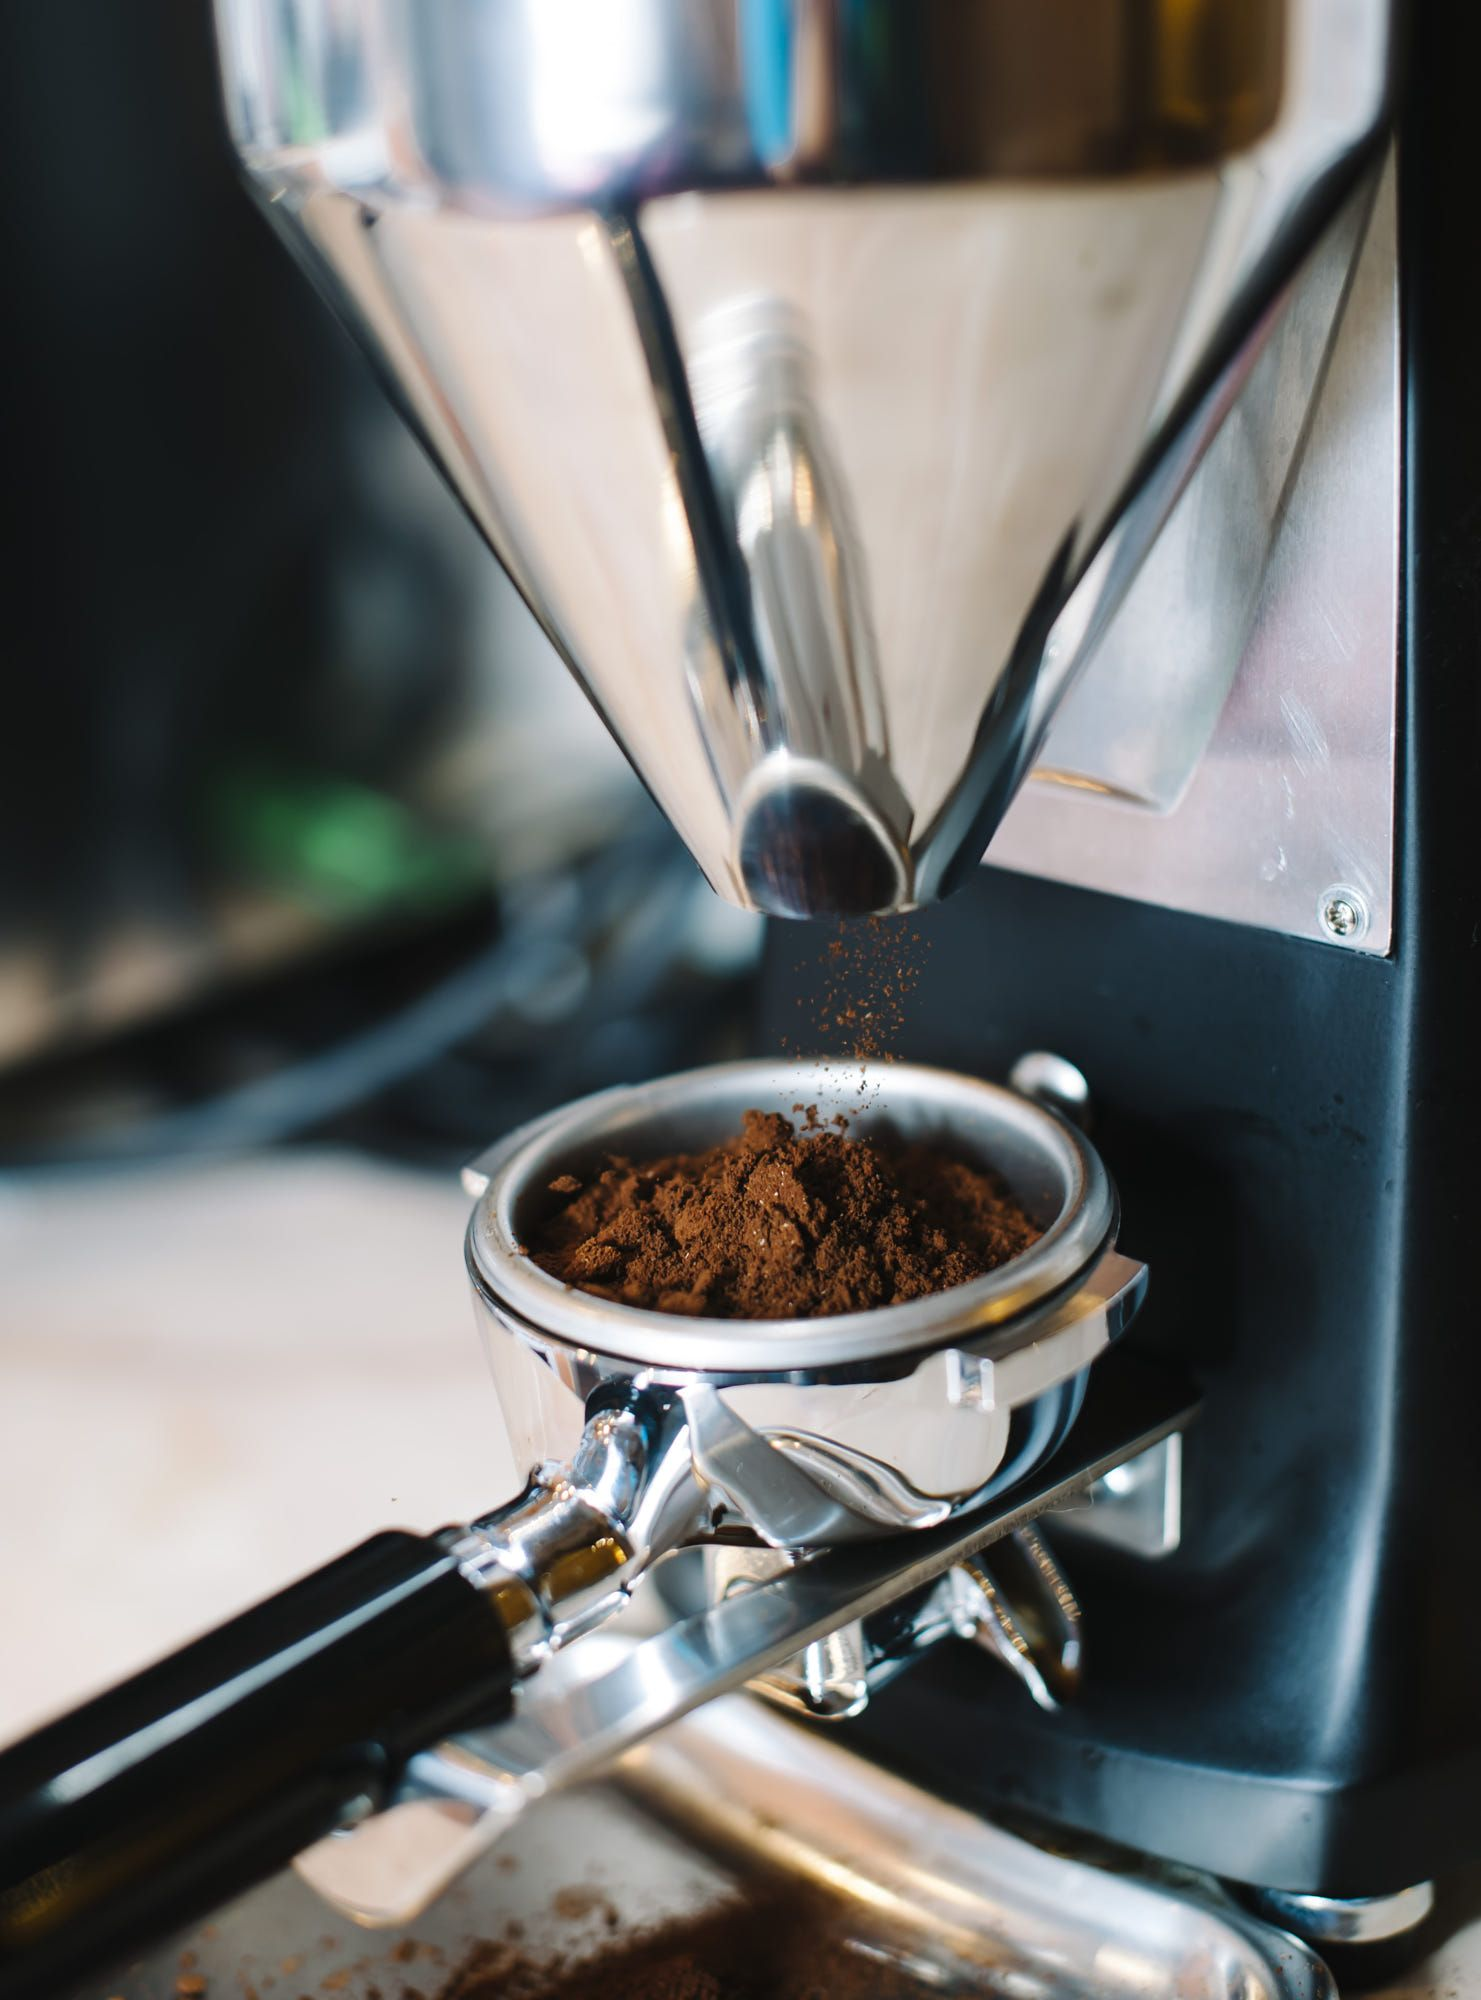 Coffee grinder grinds fresh coffee beans into a portafilter | Fresh coffee  beans, Coffee, Coffee grinds